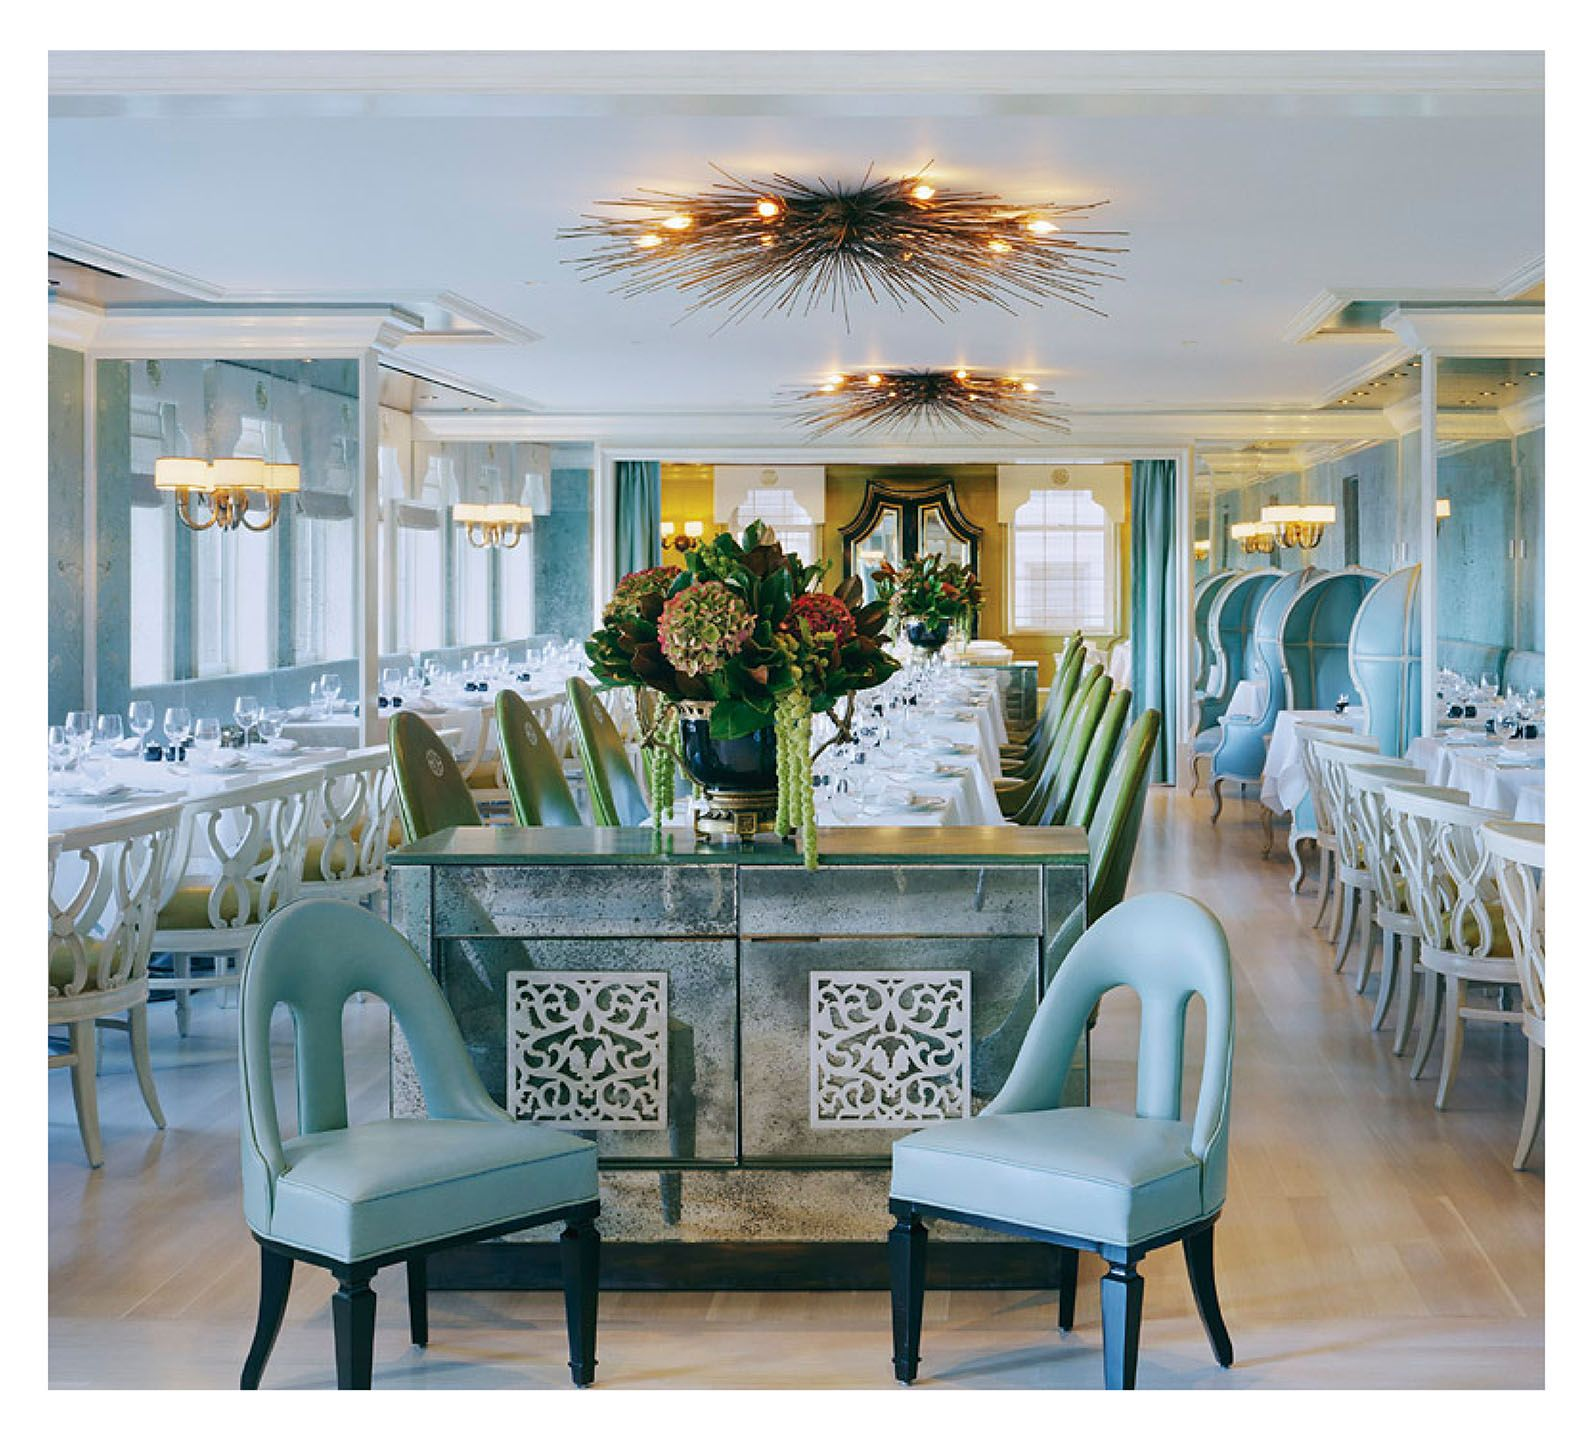 8 Interior Design Projects By Kelly Wearstler: BERGDORF GOODMAN RESTURANT - KELLY WEARSTLER